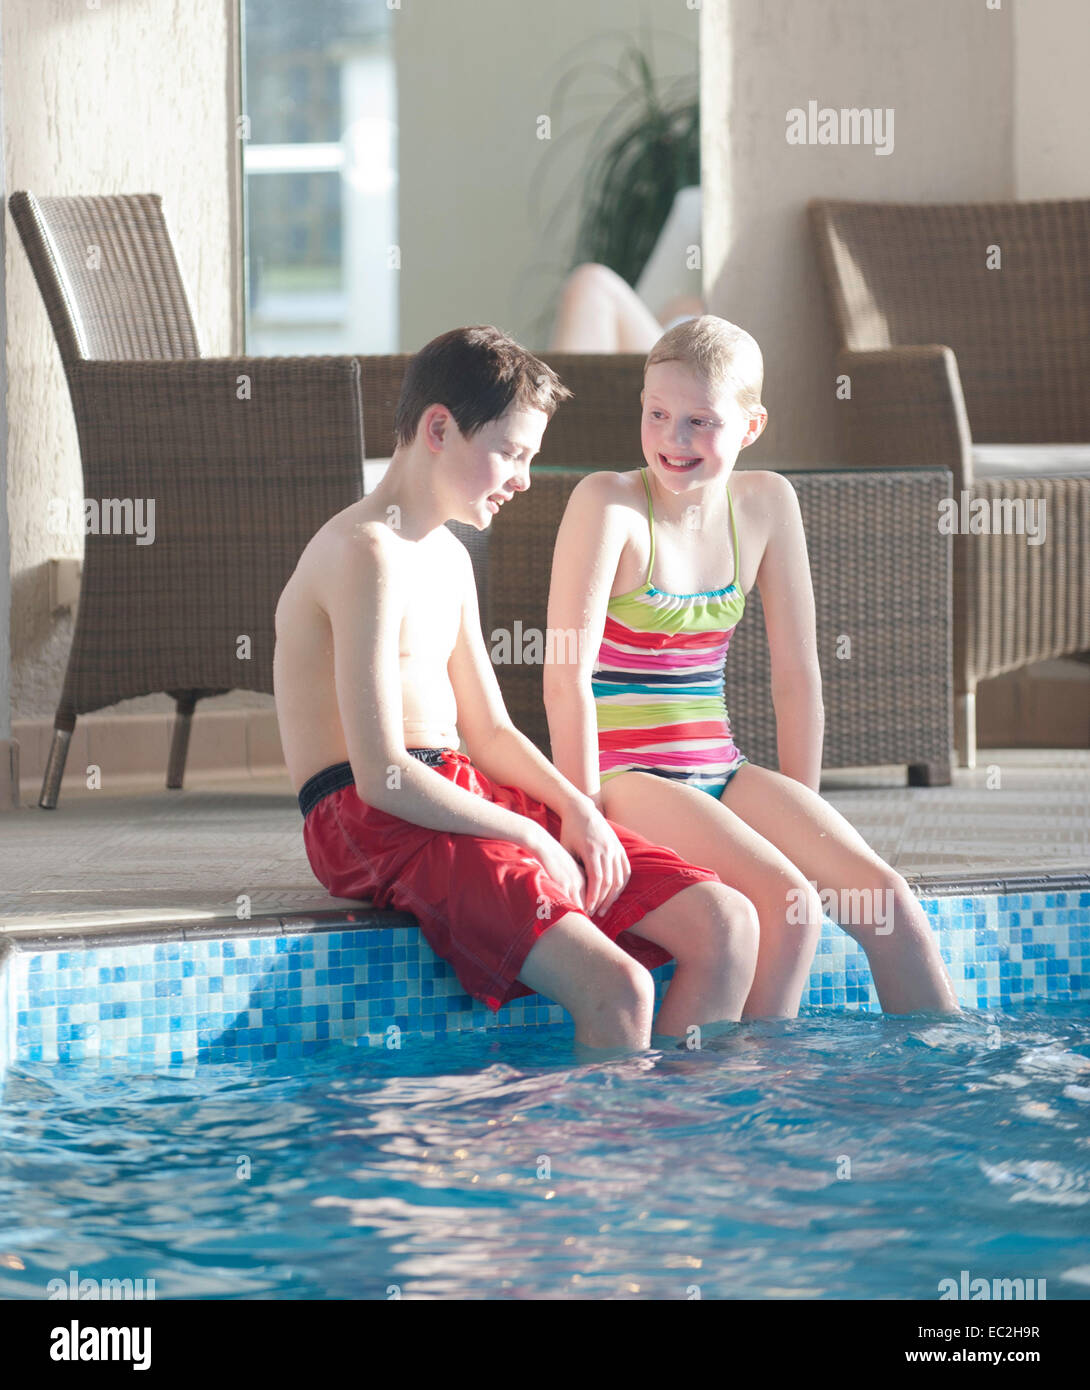 A Boy And Girl Sat By A Swimming Pool Indoors With Sun Shining Stock Photo 76274851 Alamy